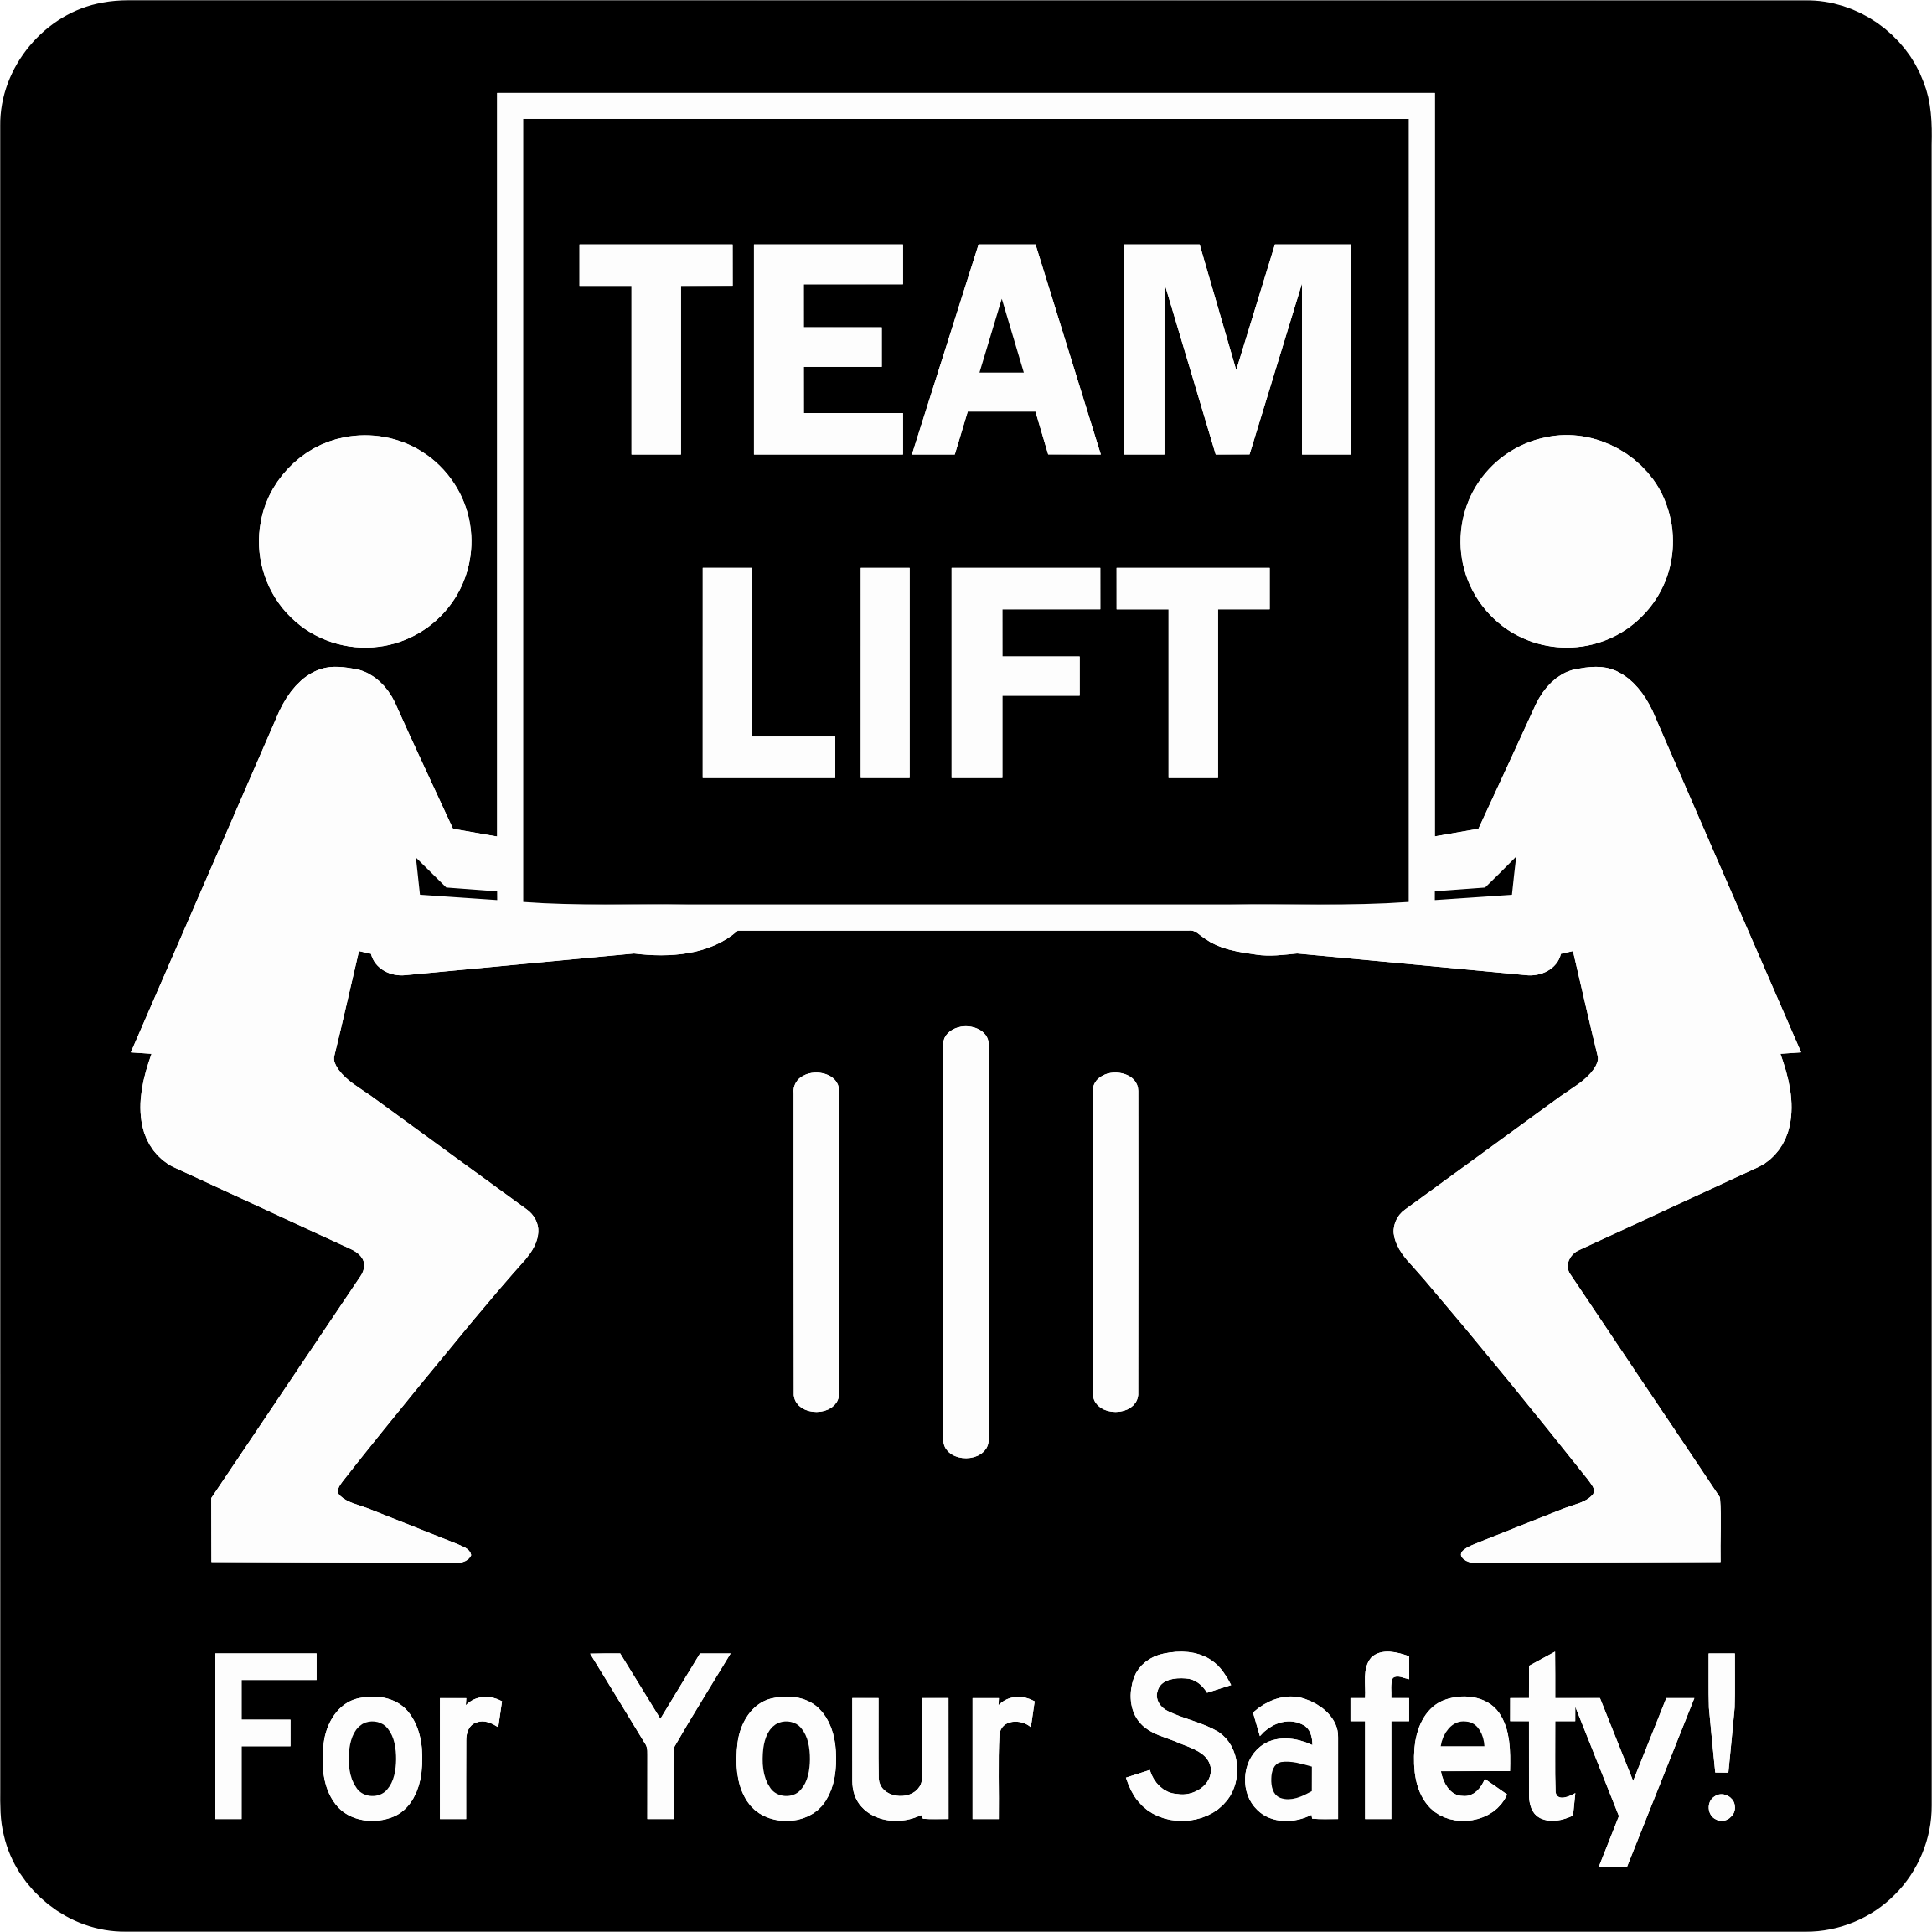 Team Lift Vectorized by GDJ